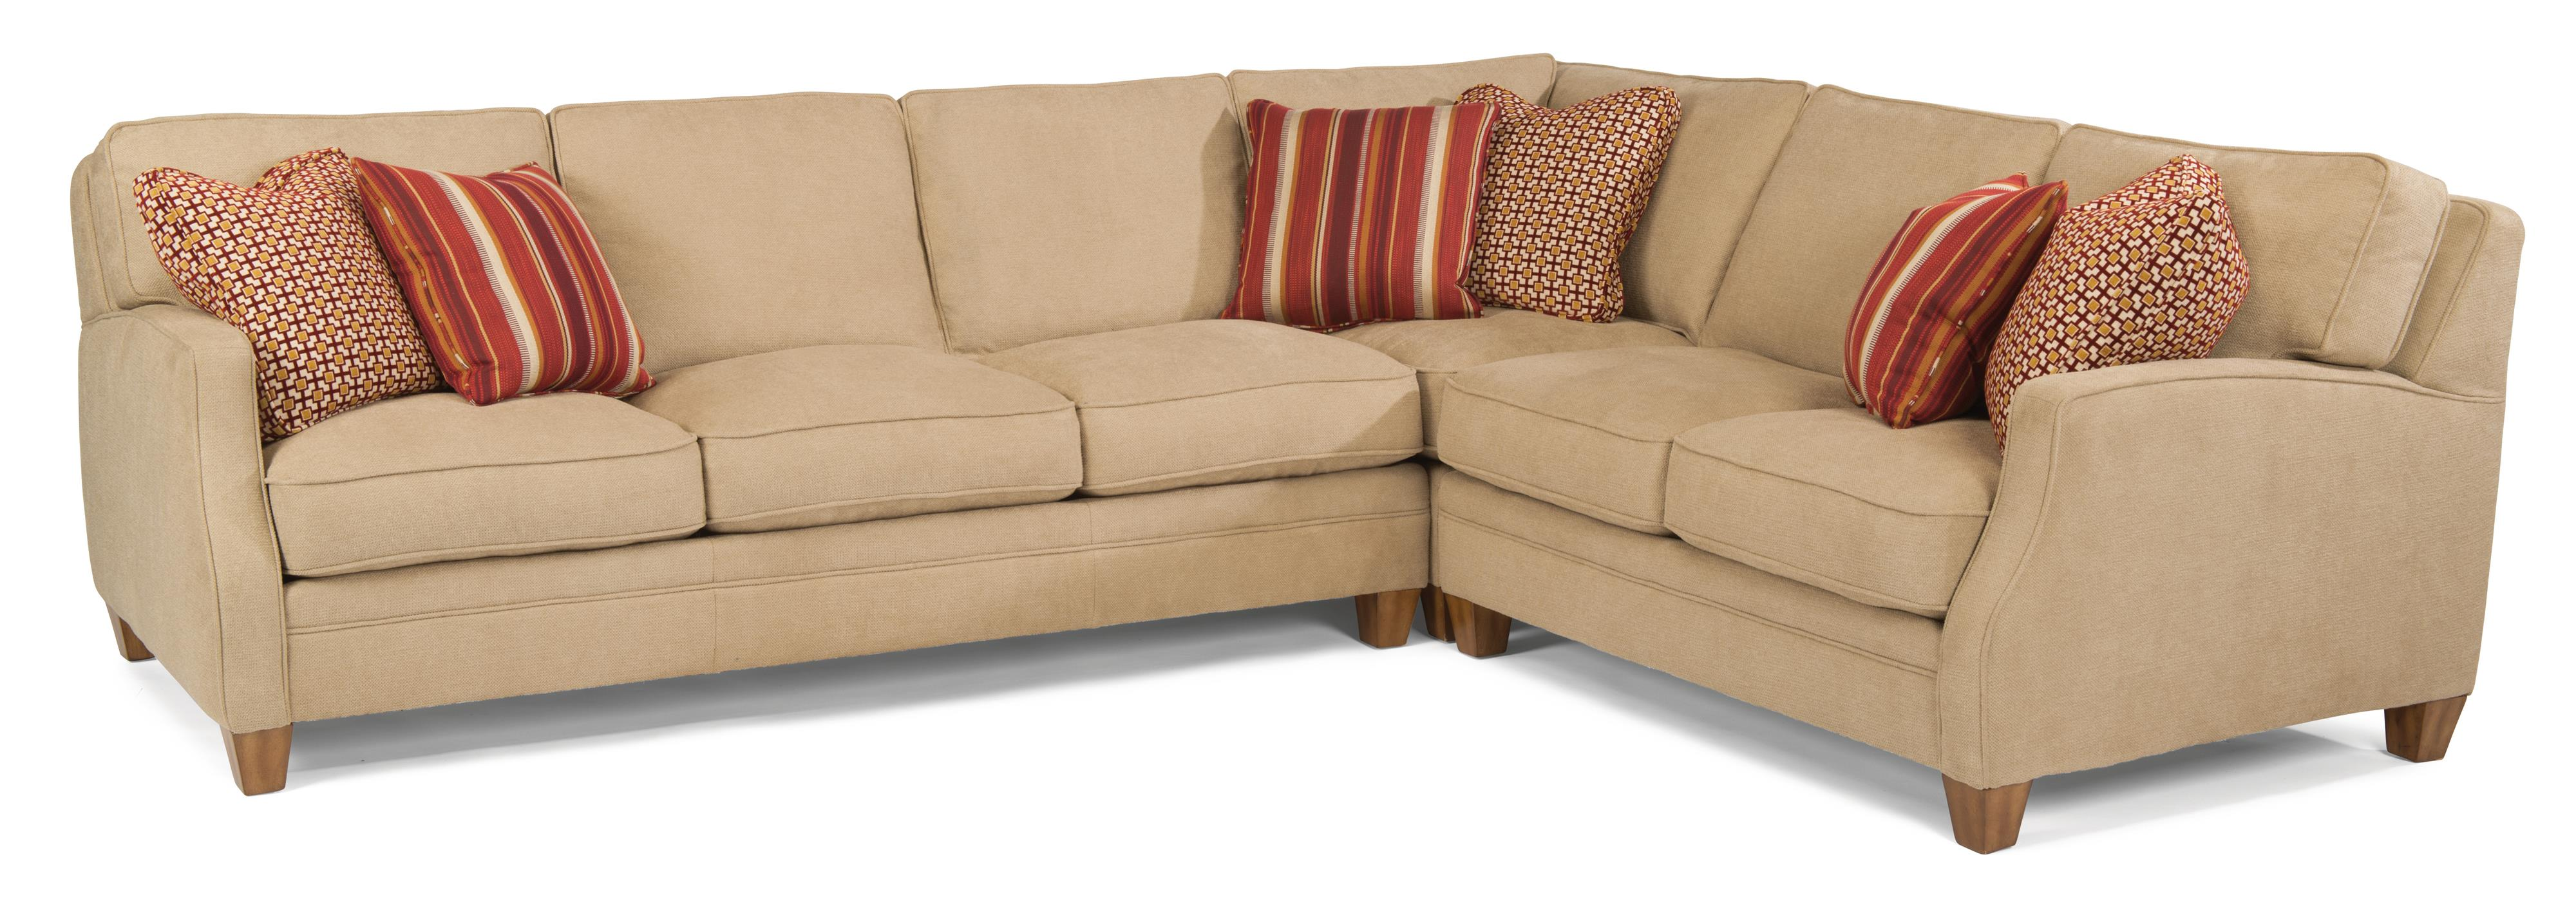 sectional dempsey flexsteel with trim threshold laf item height width pc piece products sofa contemporary